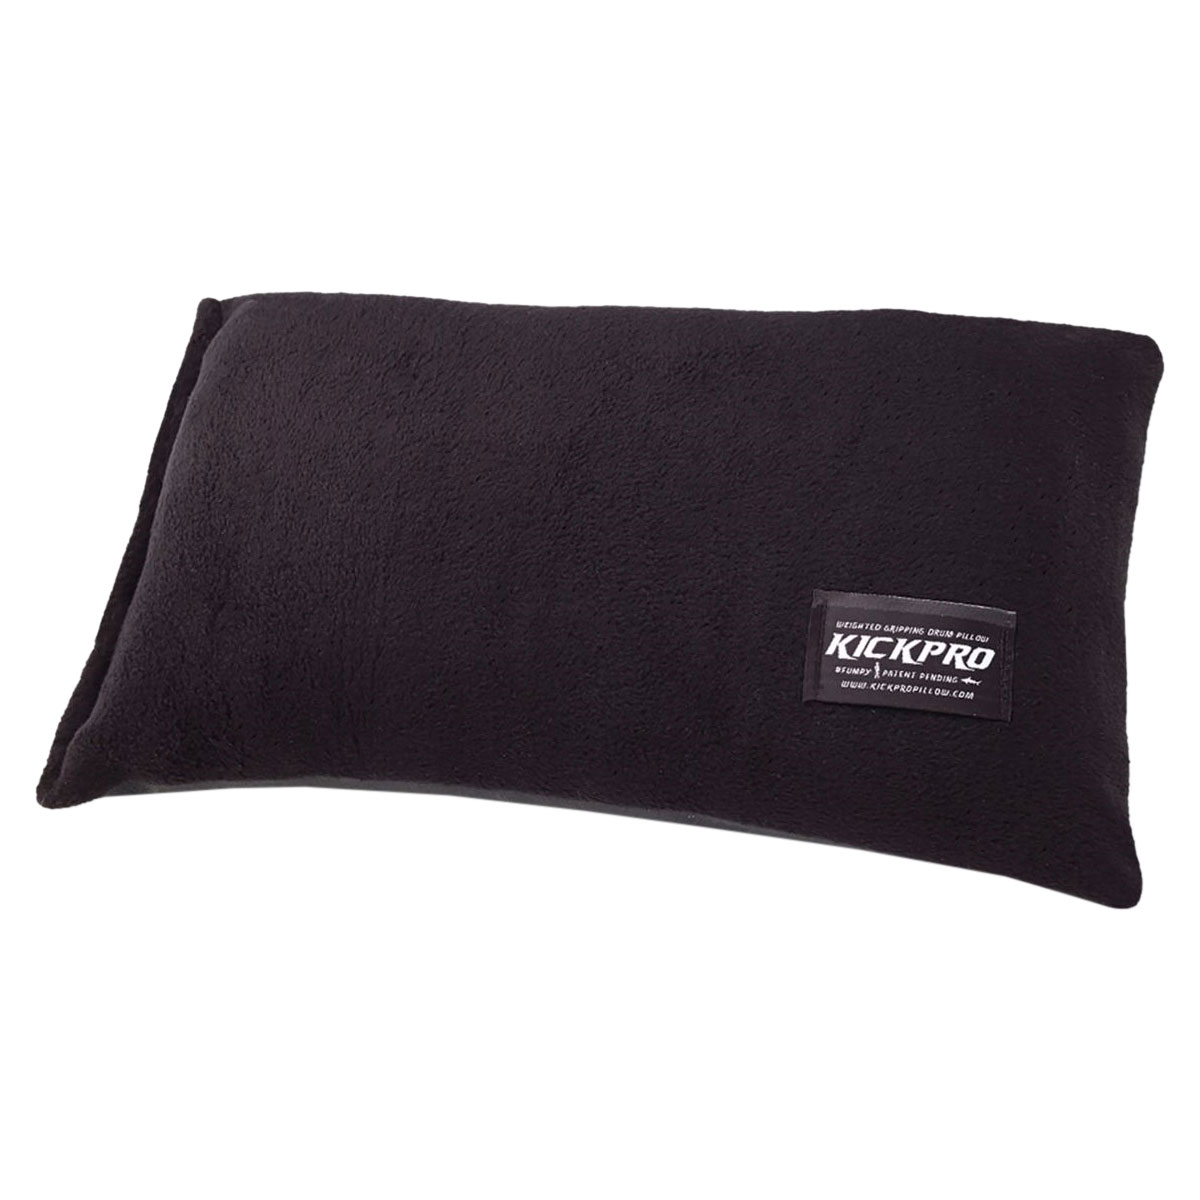 KickPro Weighted Gripping Bass Drum Pillow with Non-Slip Rubberized Bottom